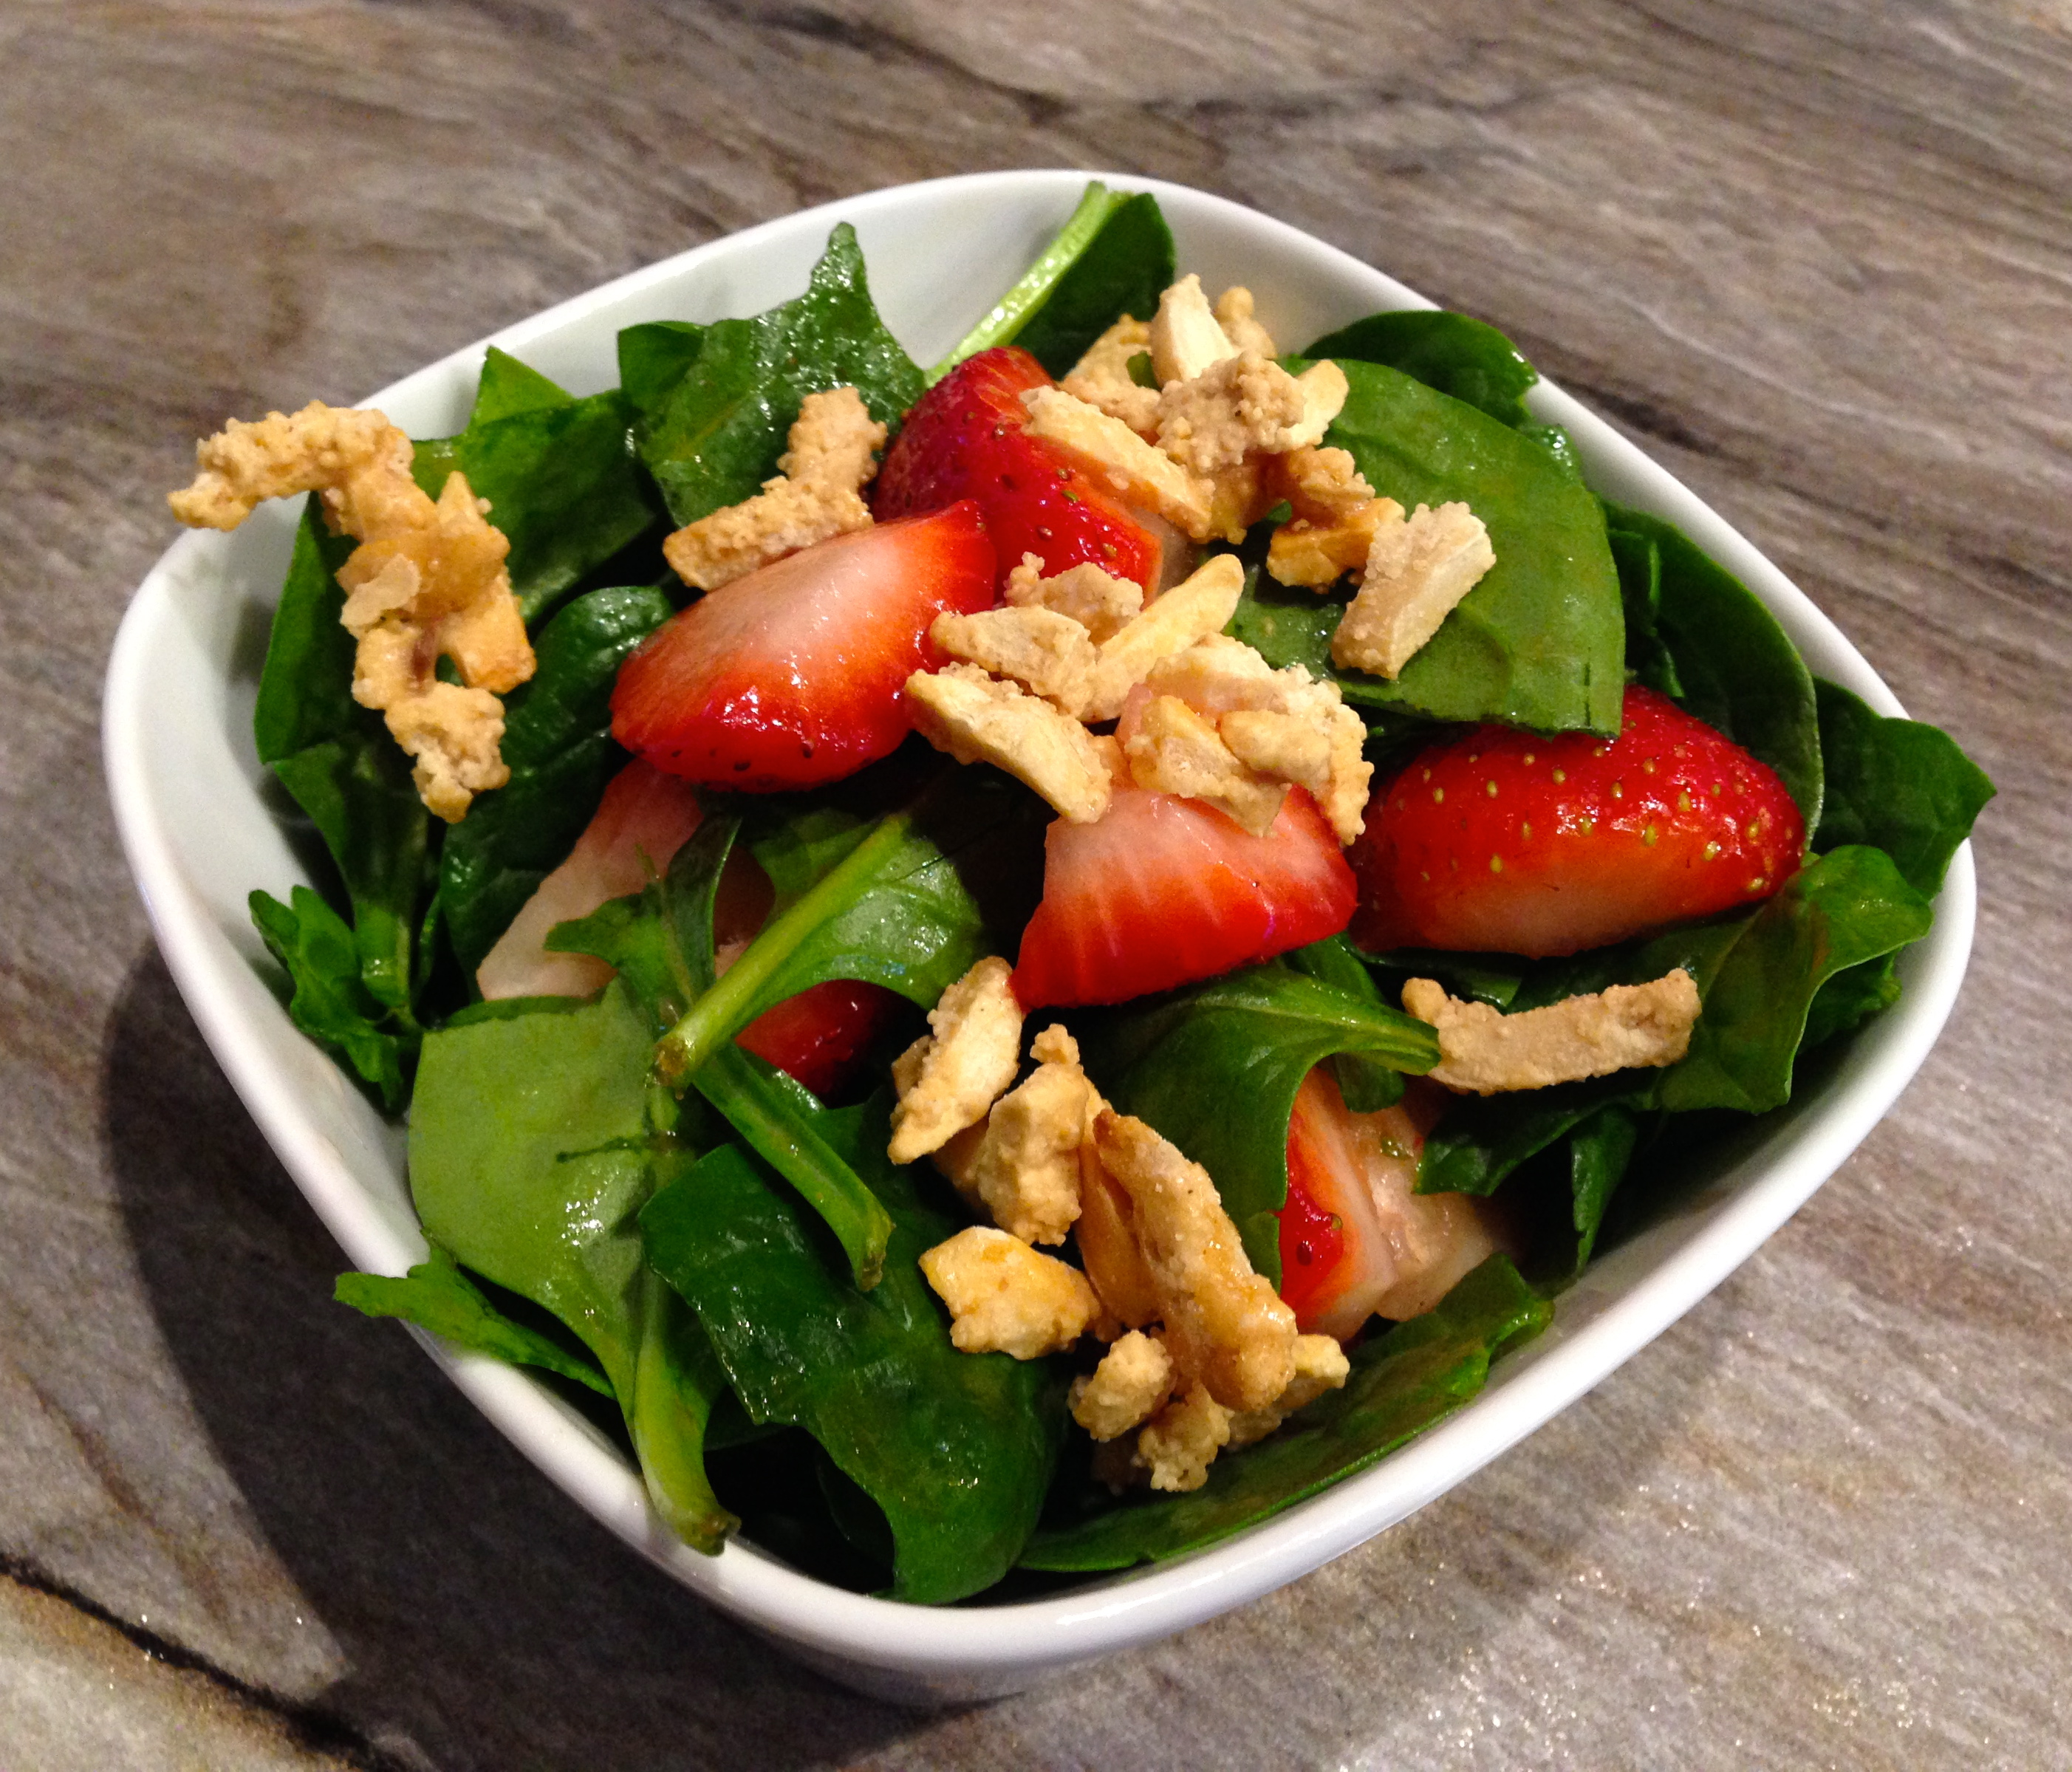 Spinach Salad with Ginger & Lime Vinaigrette